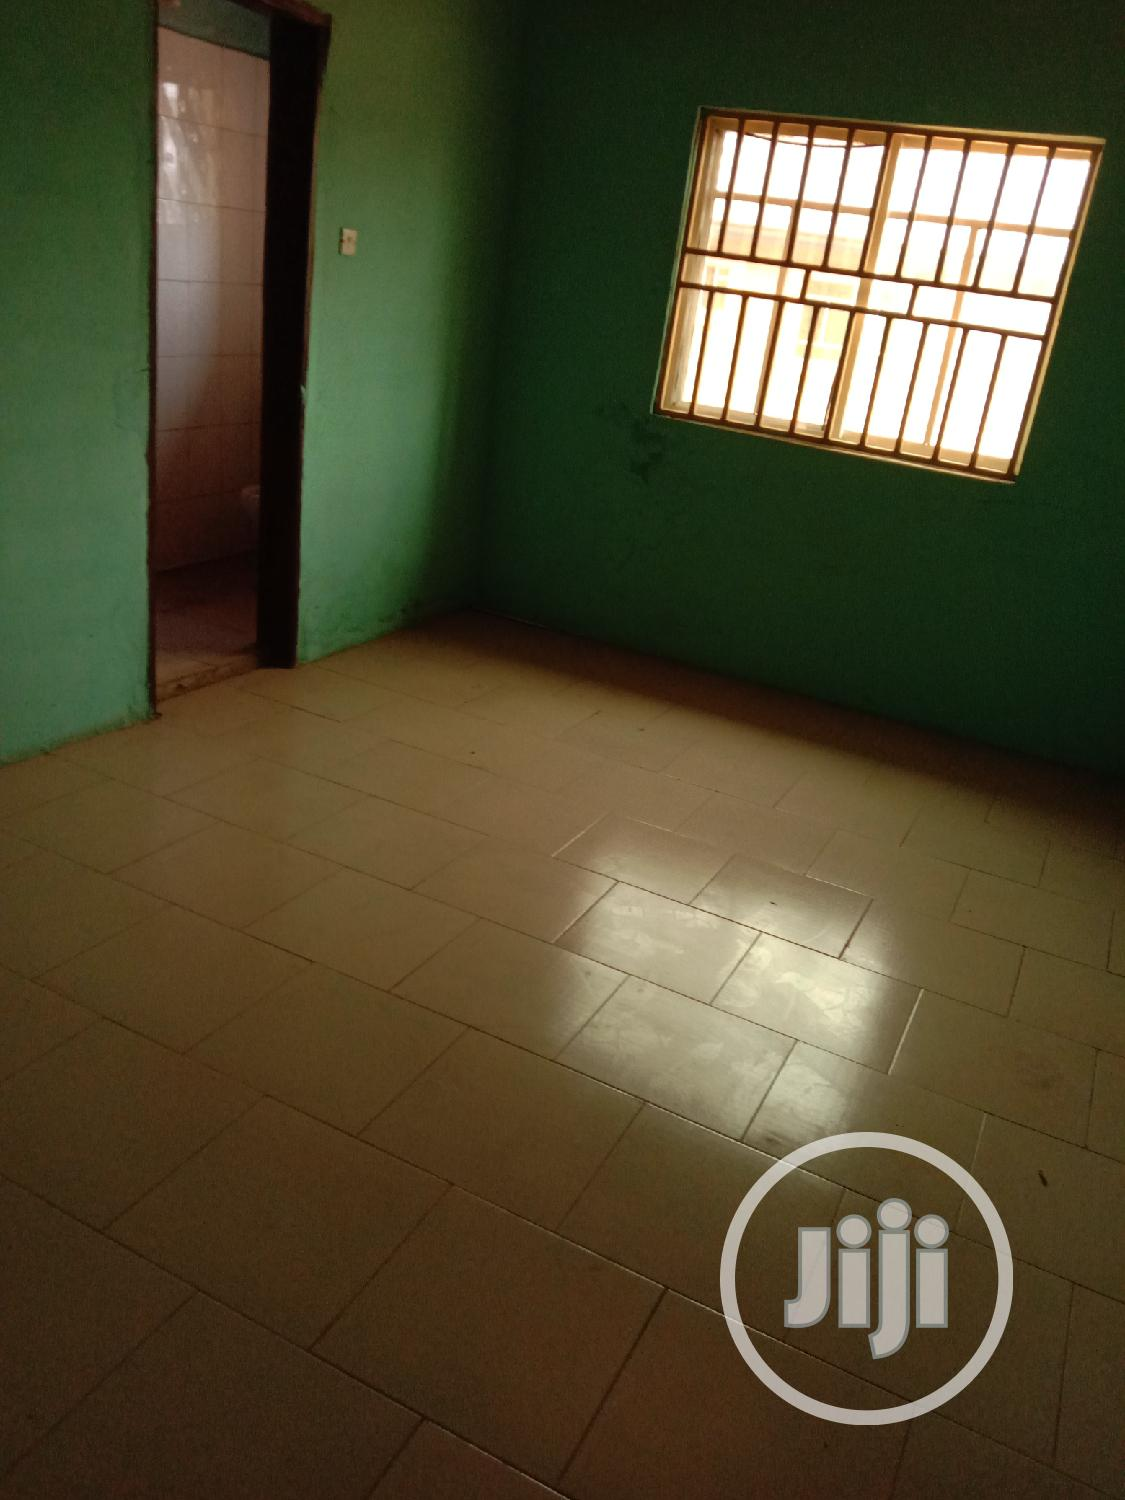 4 Bedroom Flat With 4 Toilets To Let In Independence L/O | Houses & Apartments For Rent for sale in Enugu / Enugu, Enugu State, Nigeria